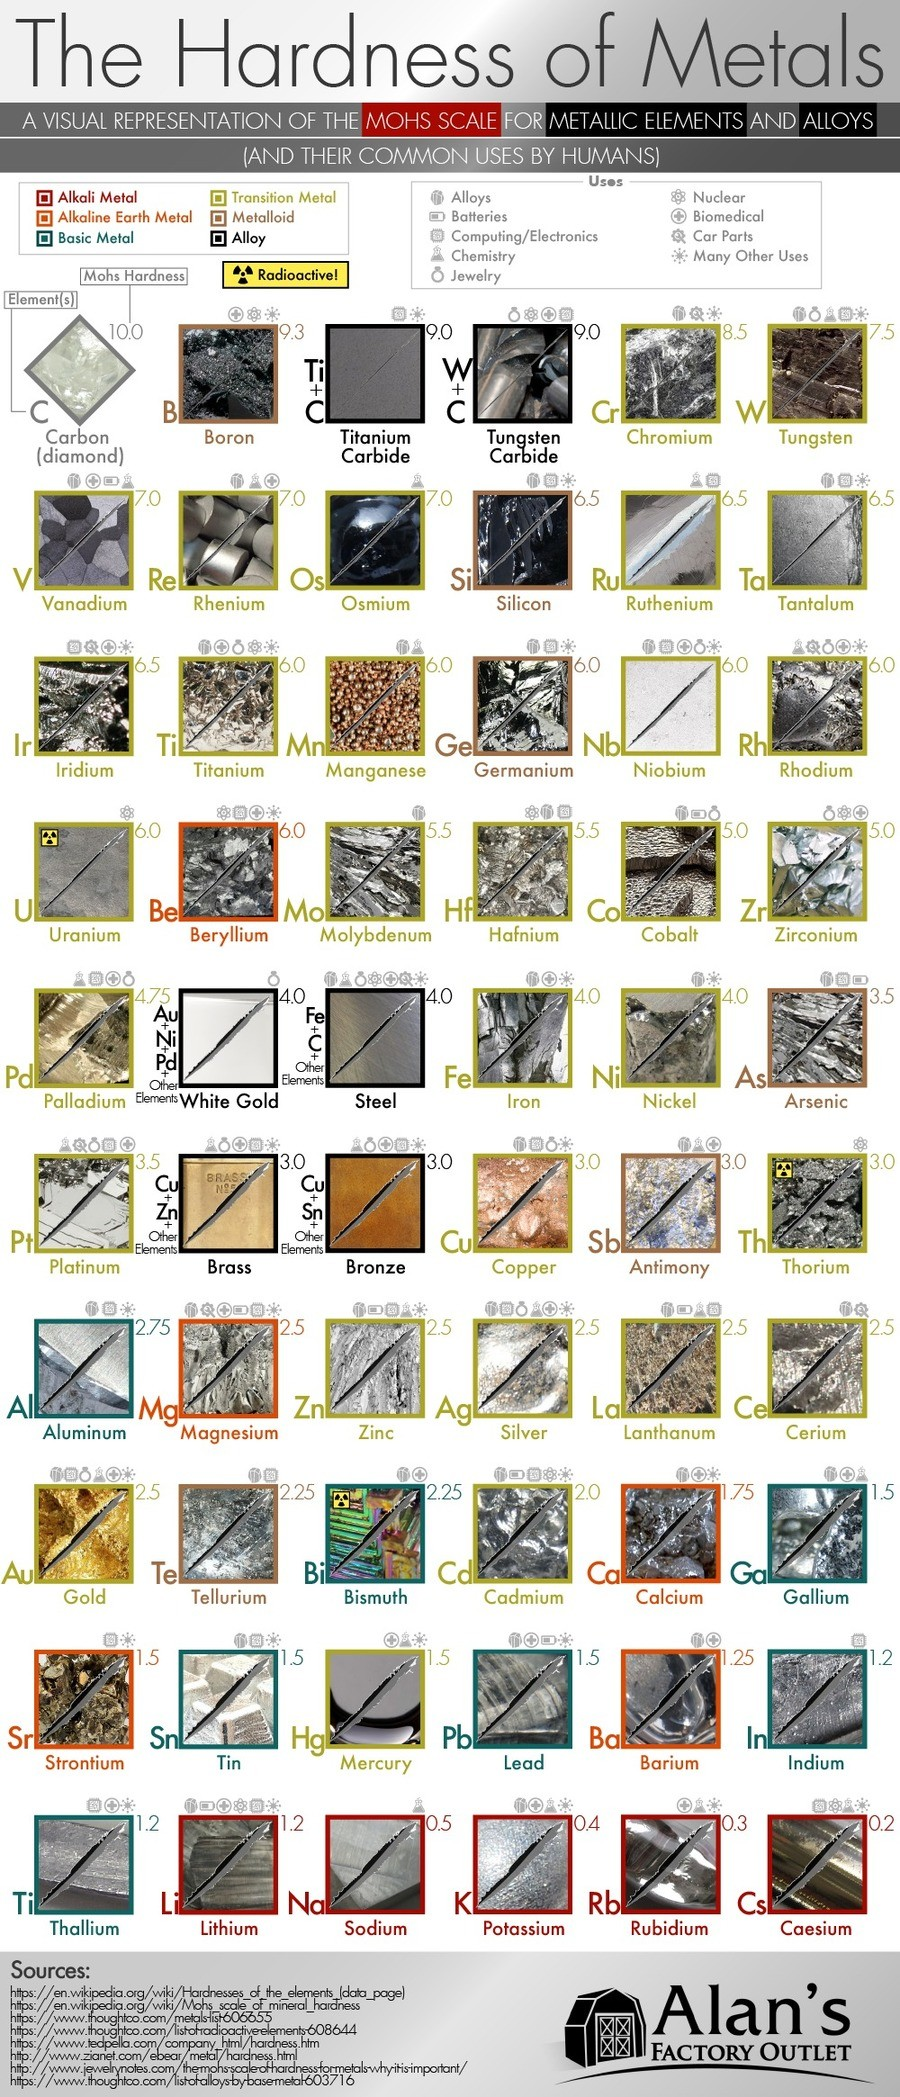 The Hardness of Metal. Different types of metal alloys and metallic elements that are used by humans by what they're used for and their Mohs hardness. Source: .